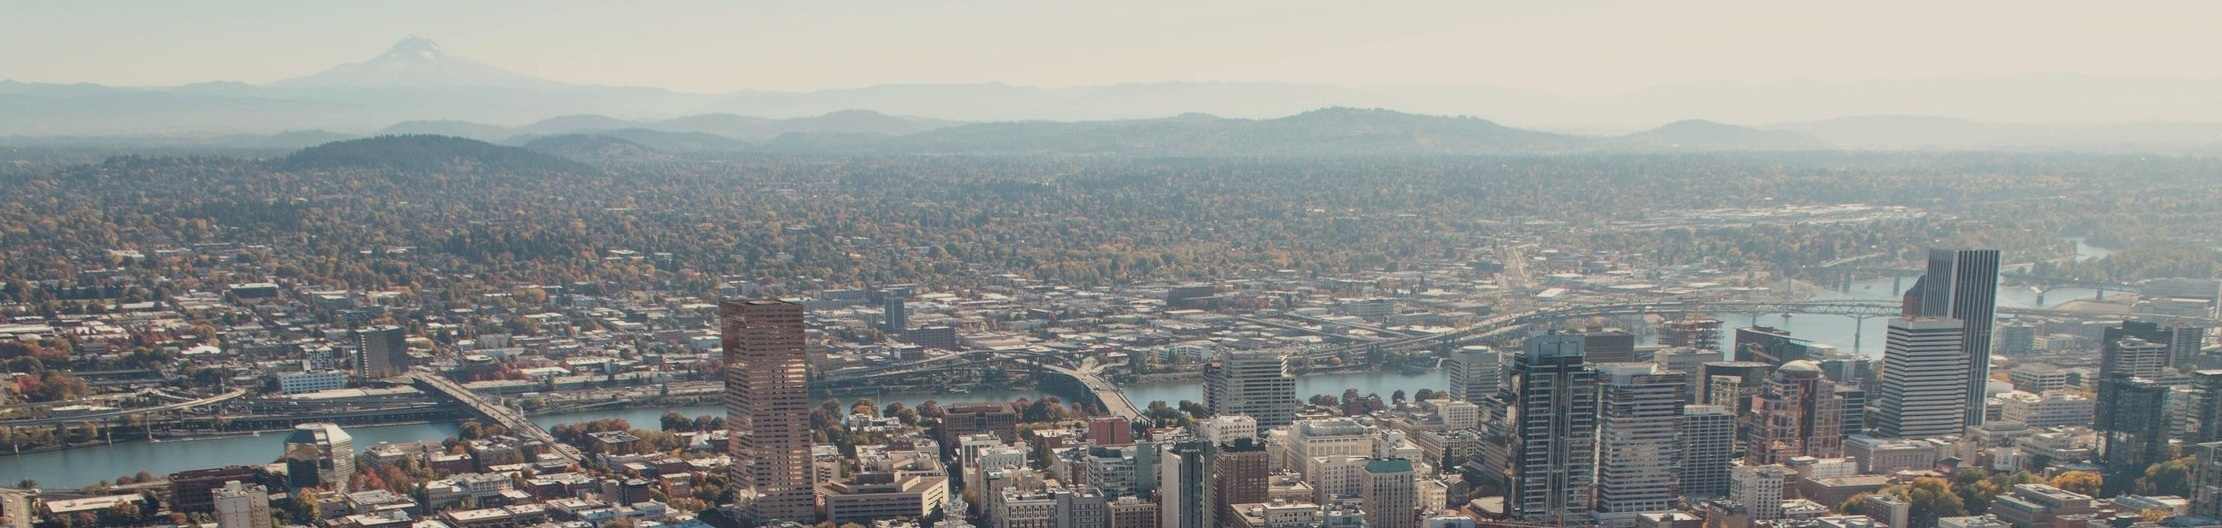 Promoting equitable TOD in Portland -